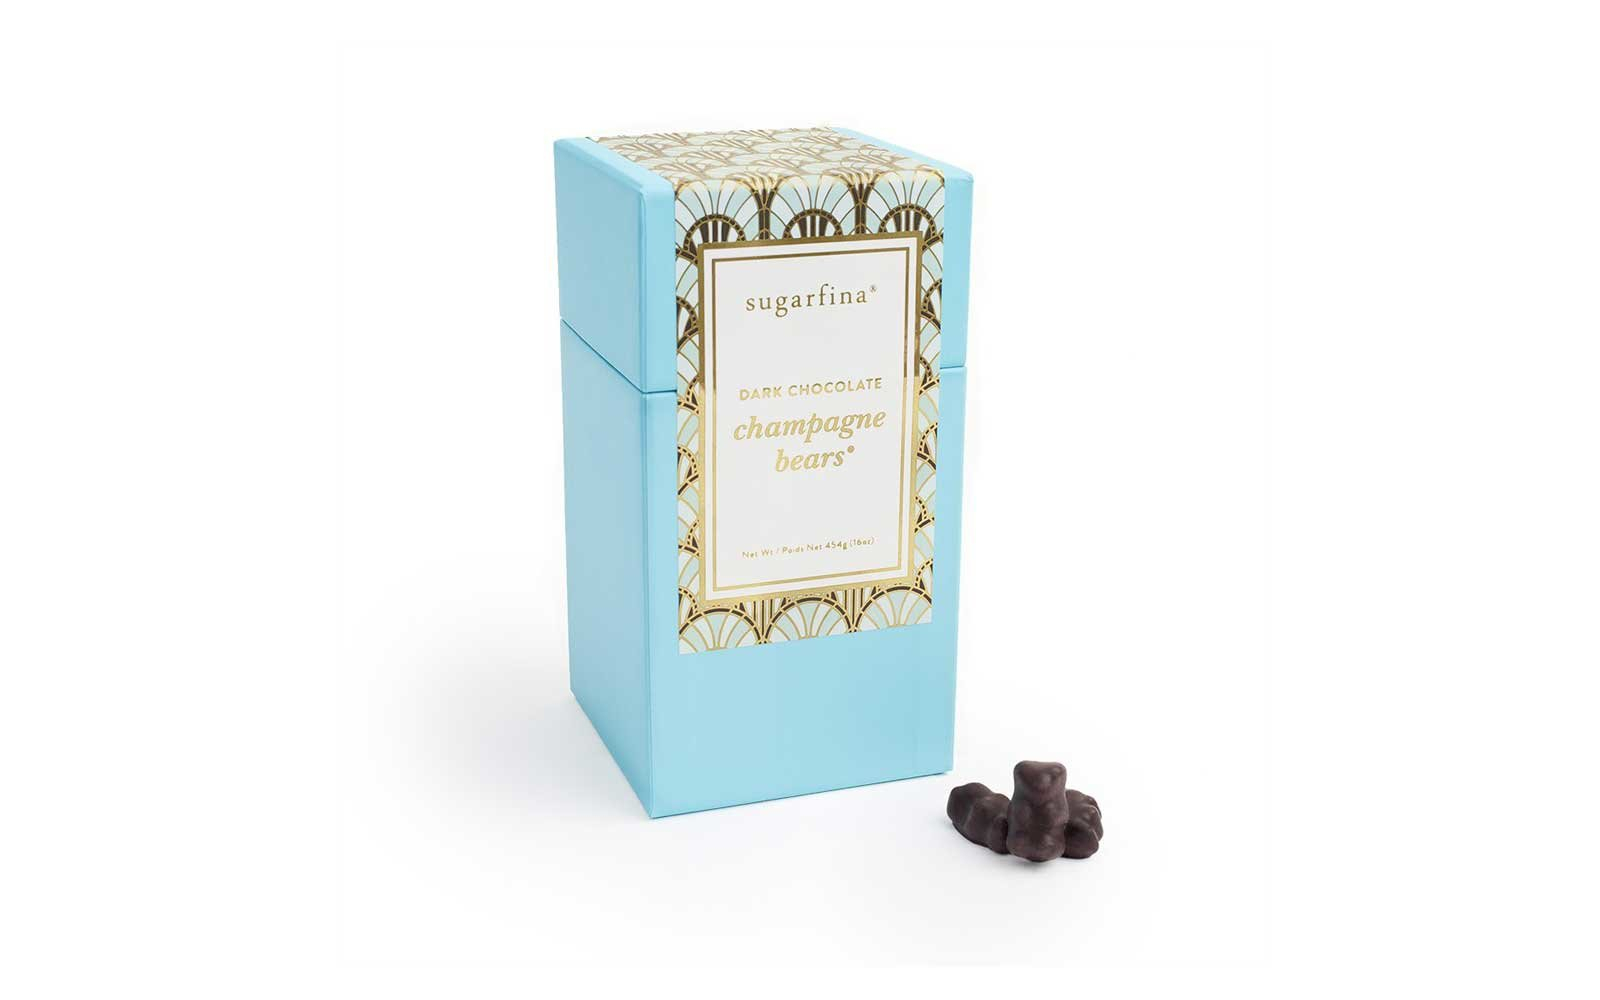 Cocolate Covered Champagne Bears